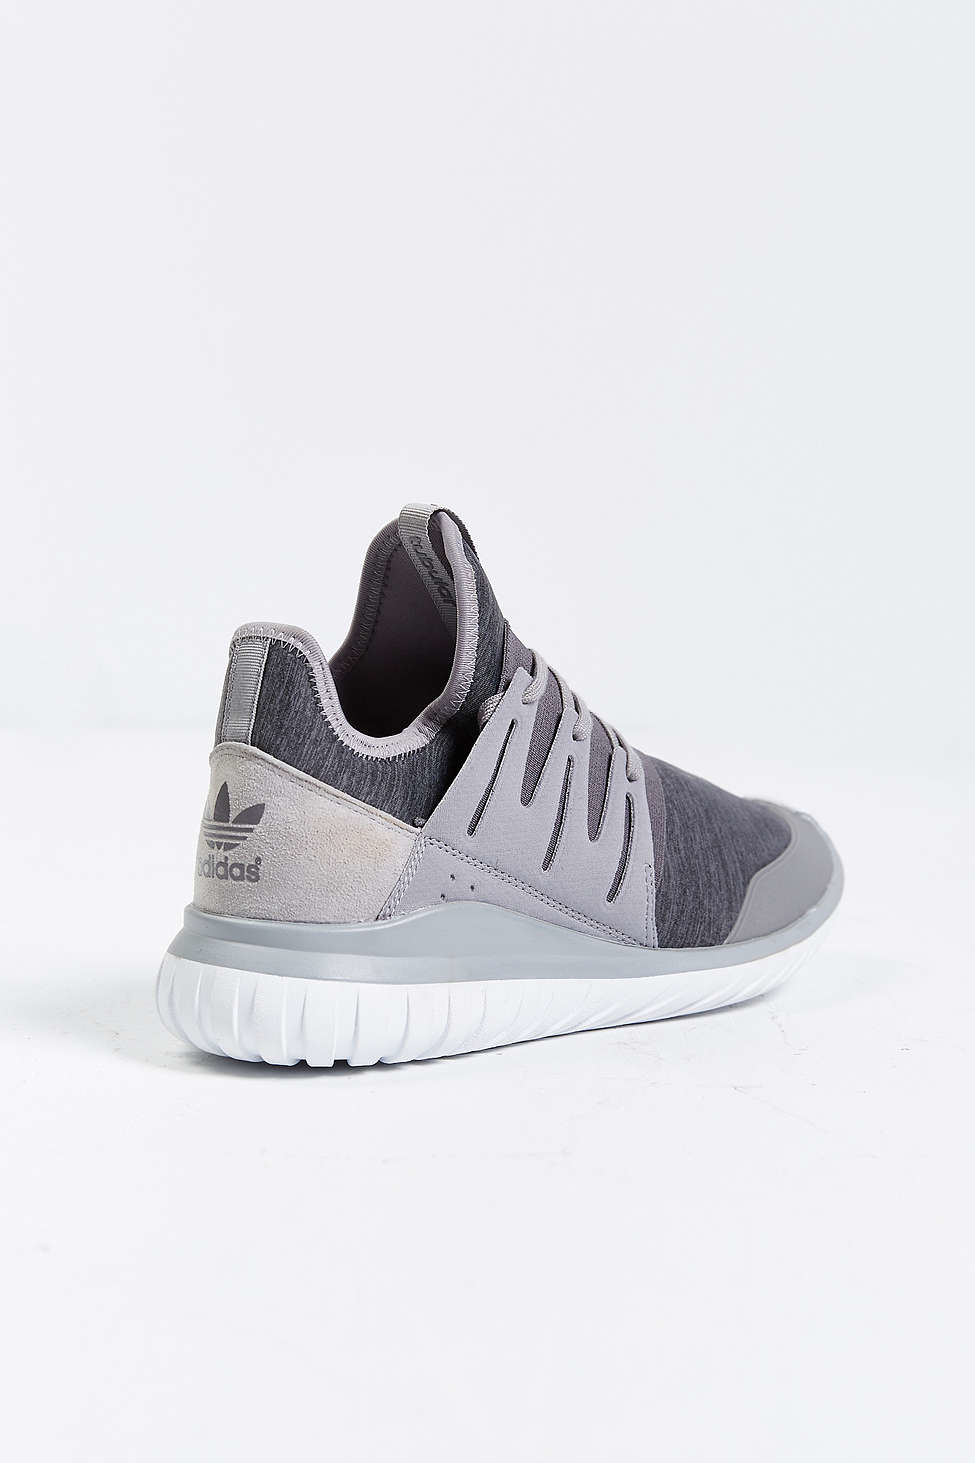 Adidas Tubular Radial All Grey